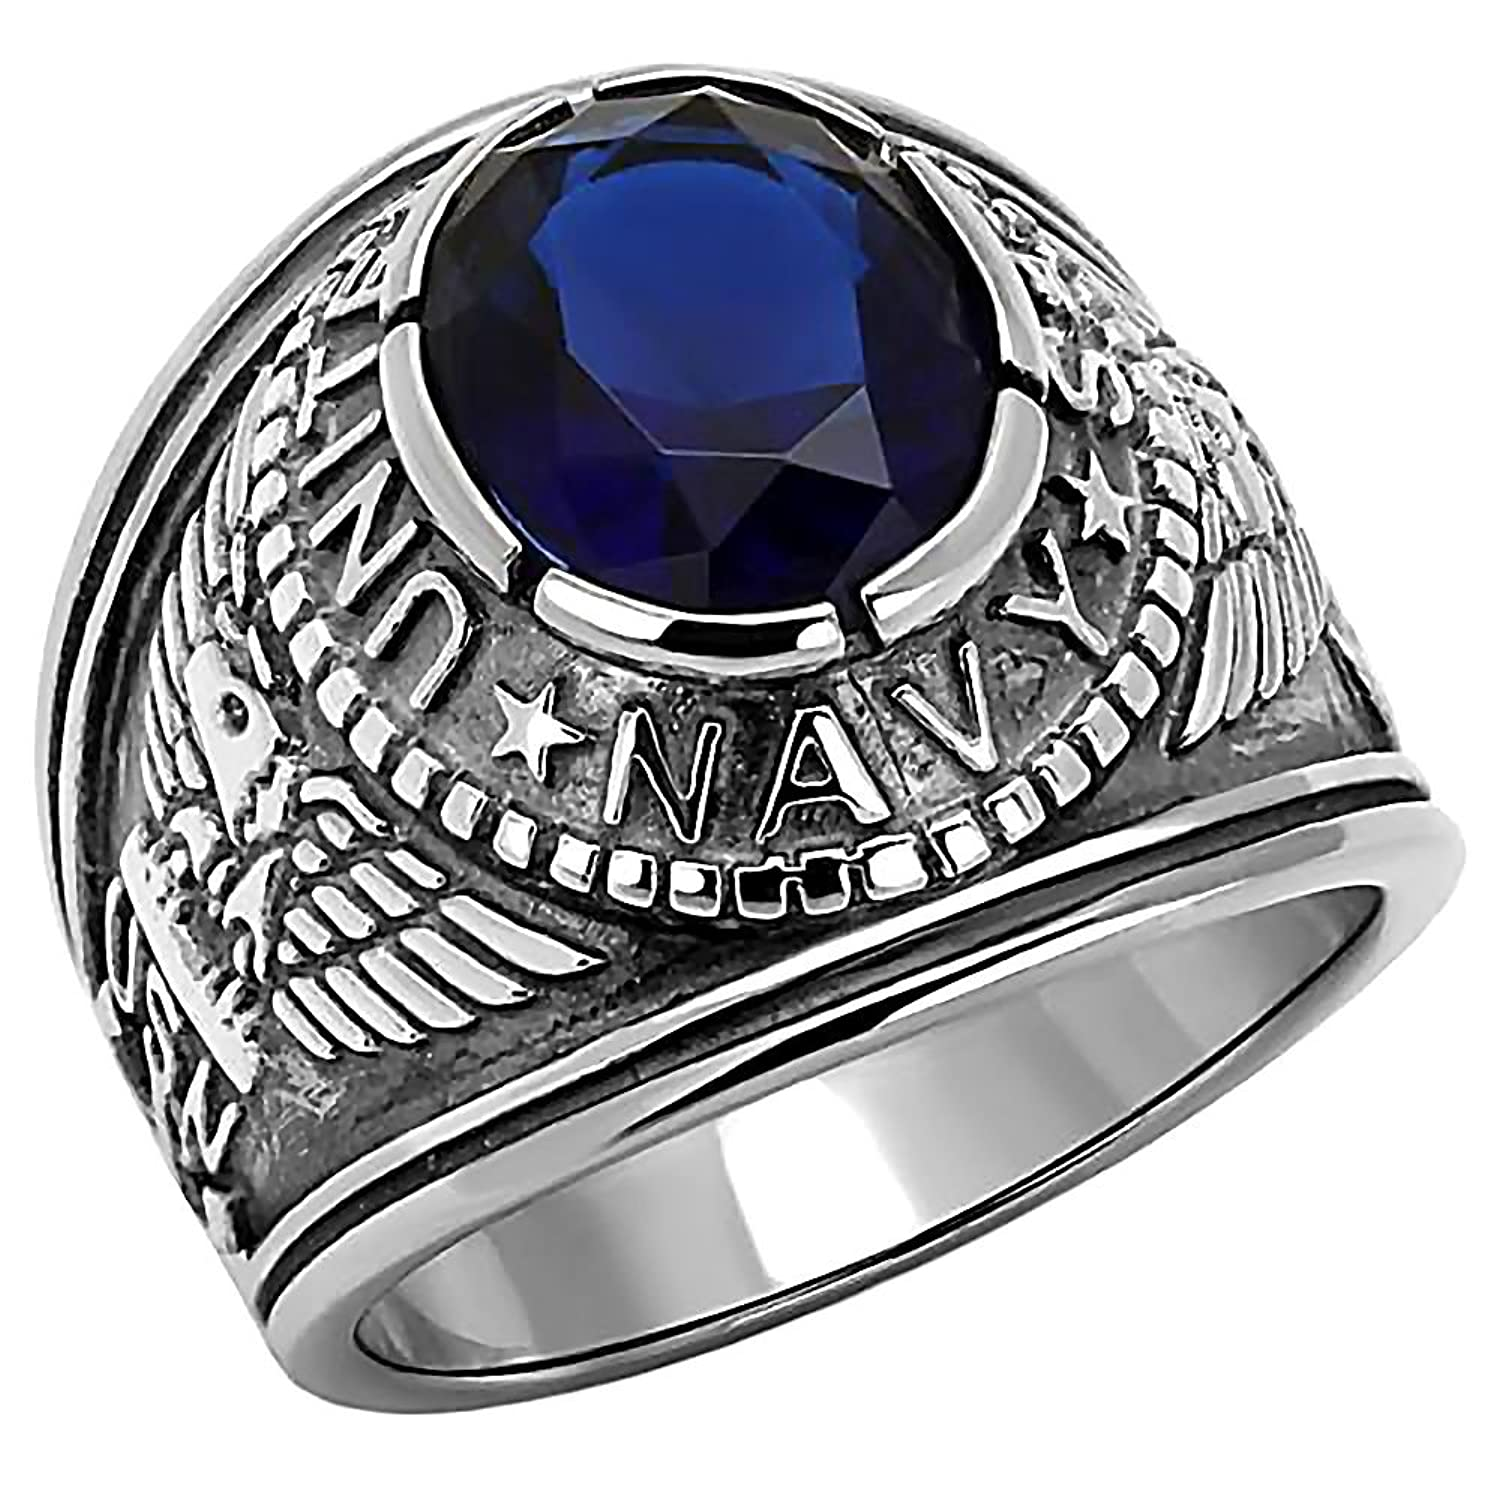 Navy: Mens 5.0ct Simulated Sapphire USA Navy Military Signet Ring 316 Stainless Steel, 3061